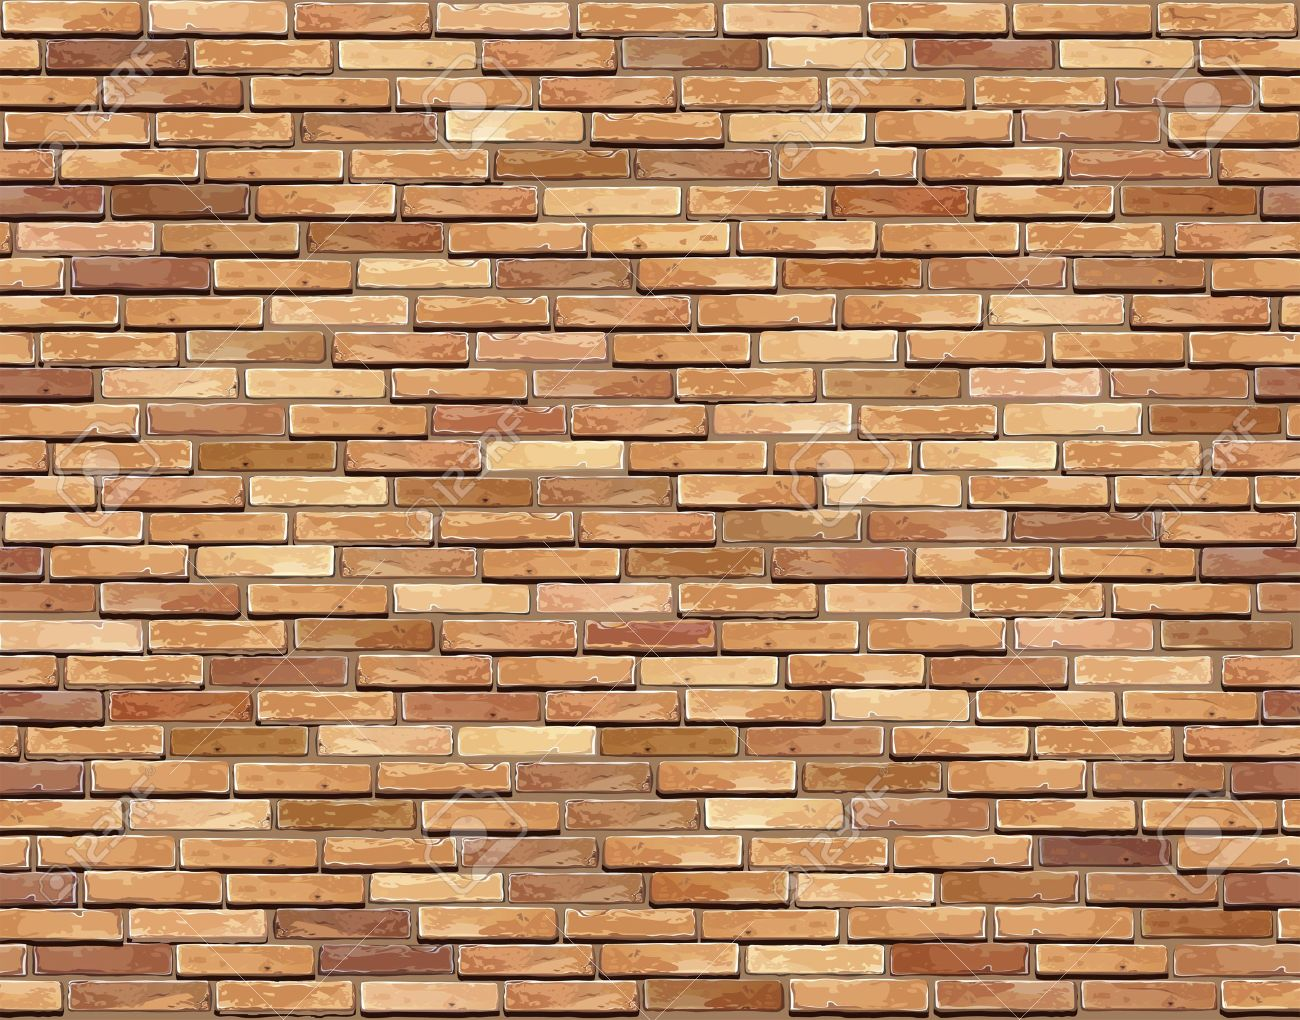 Brick wall seamless illustration background - texture pattern for continuous replicate Stock Vector - 15514560